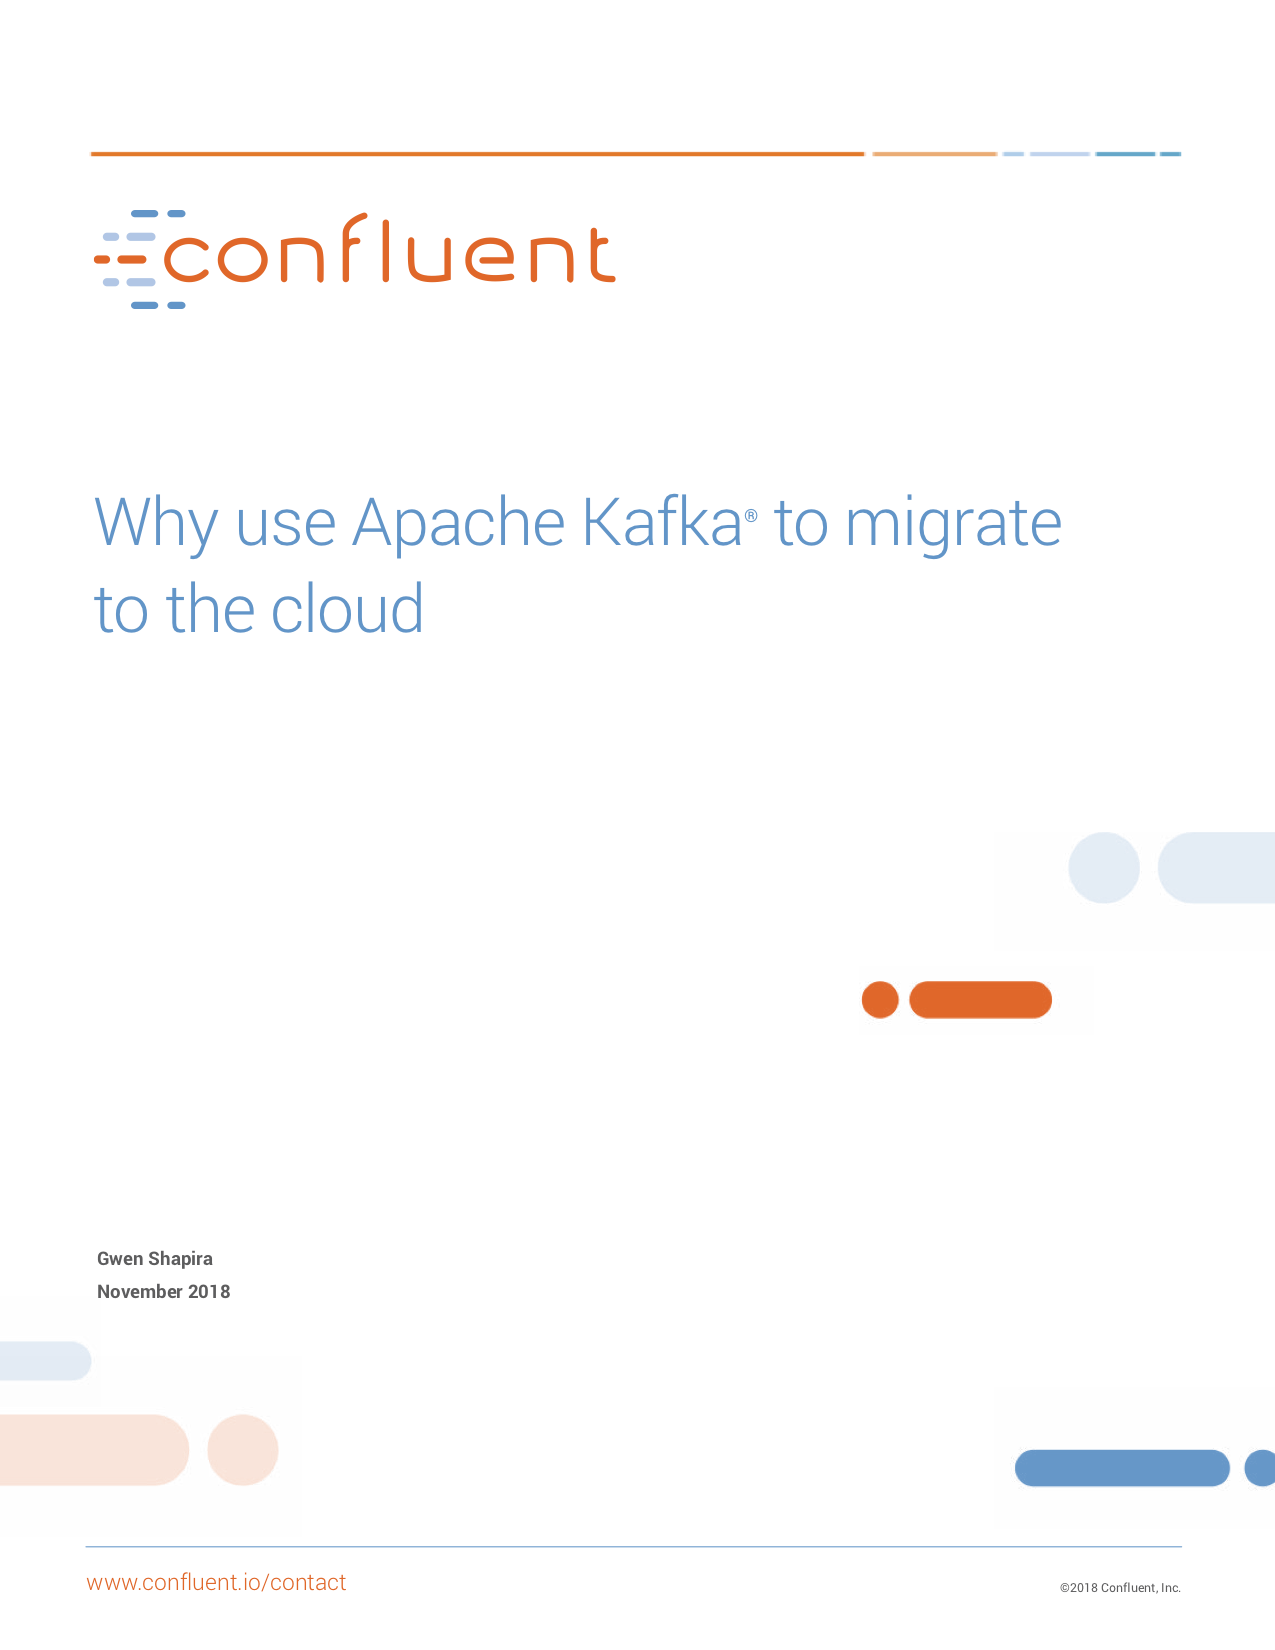 Why Use Apache Kafka® to Migrate to the Cloud